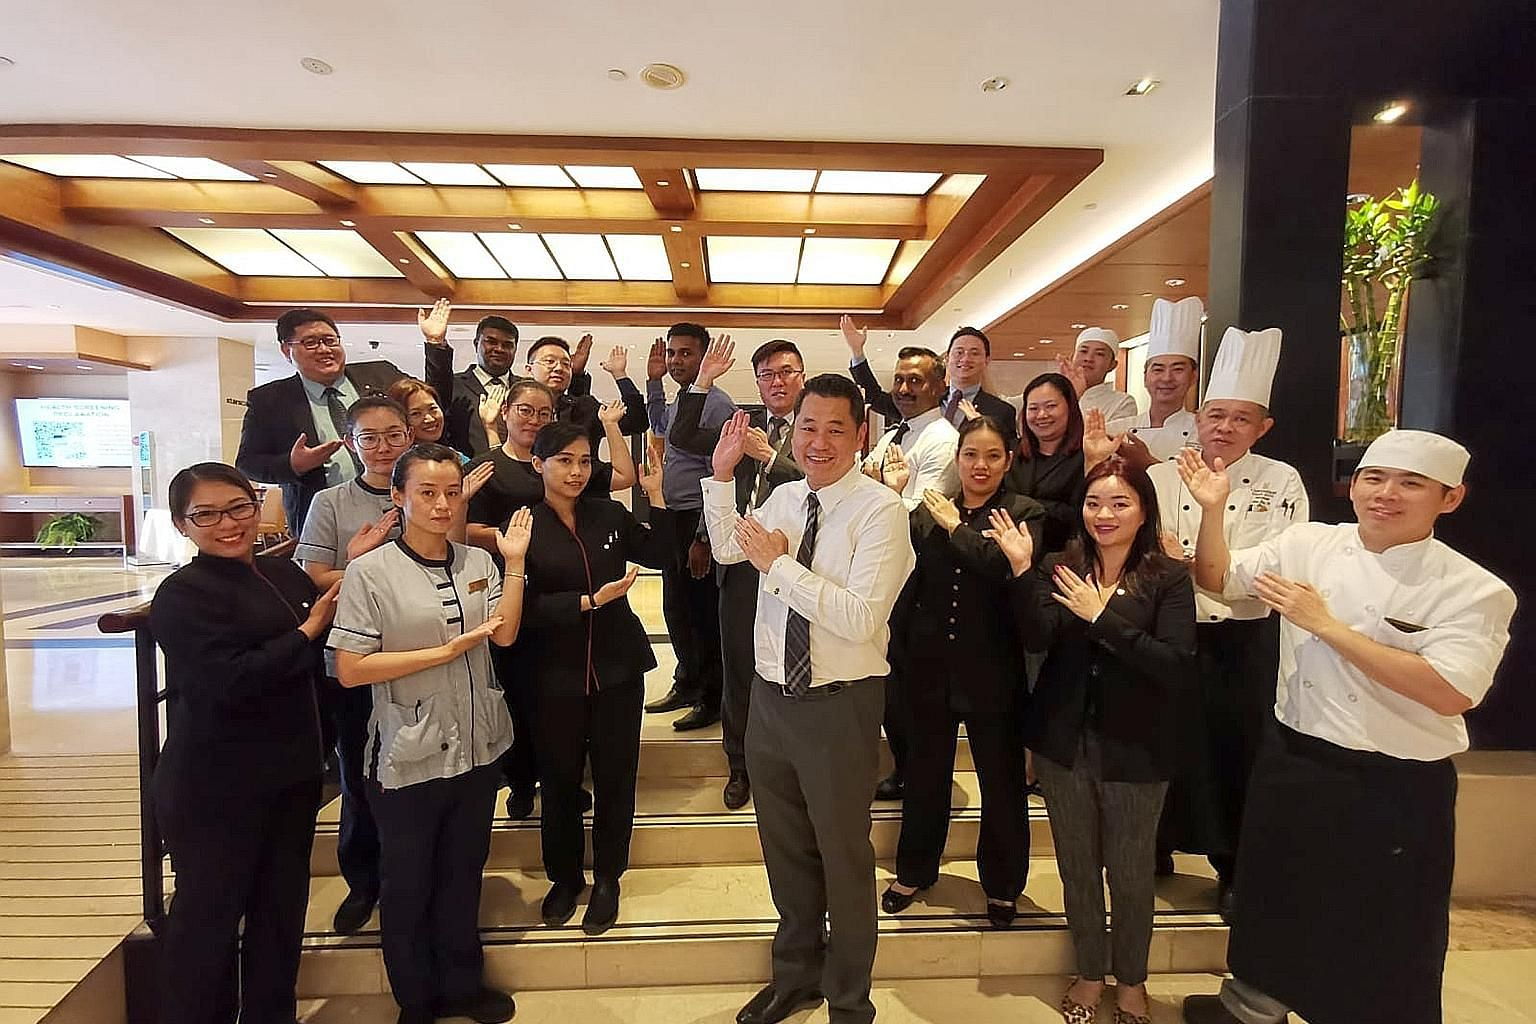 Eighteen organisations, including Copthorne King's Hotel (left) and cleaning company Chye Thiam Maintenance, have been awarded the Plaque of Commendation by the National Trades Union Congress at this year's May Day Awards.